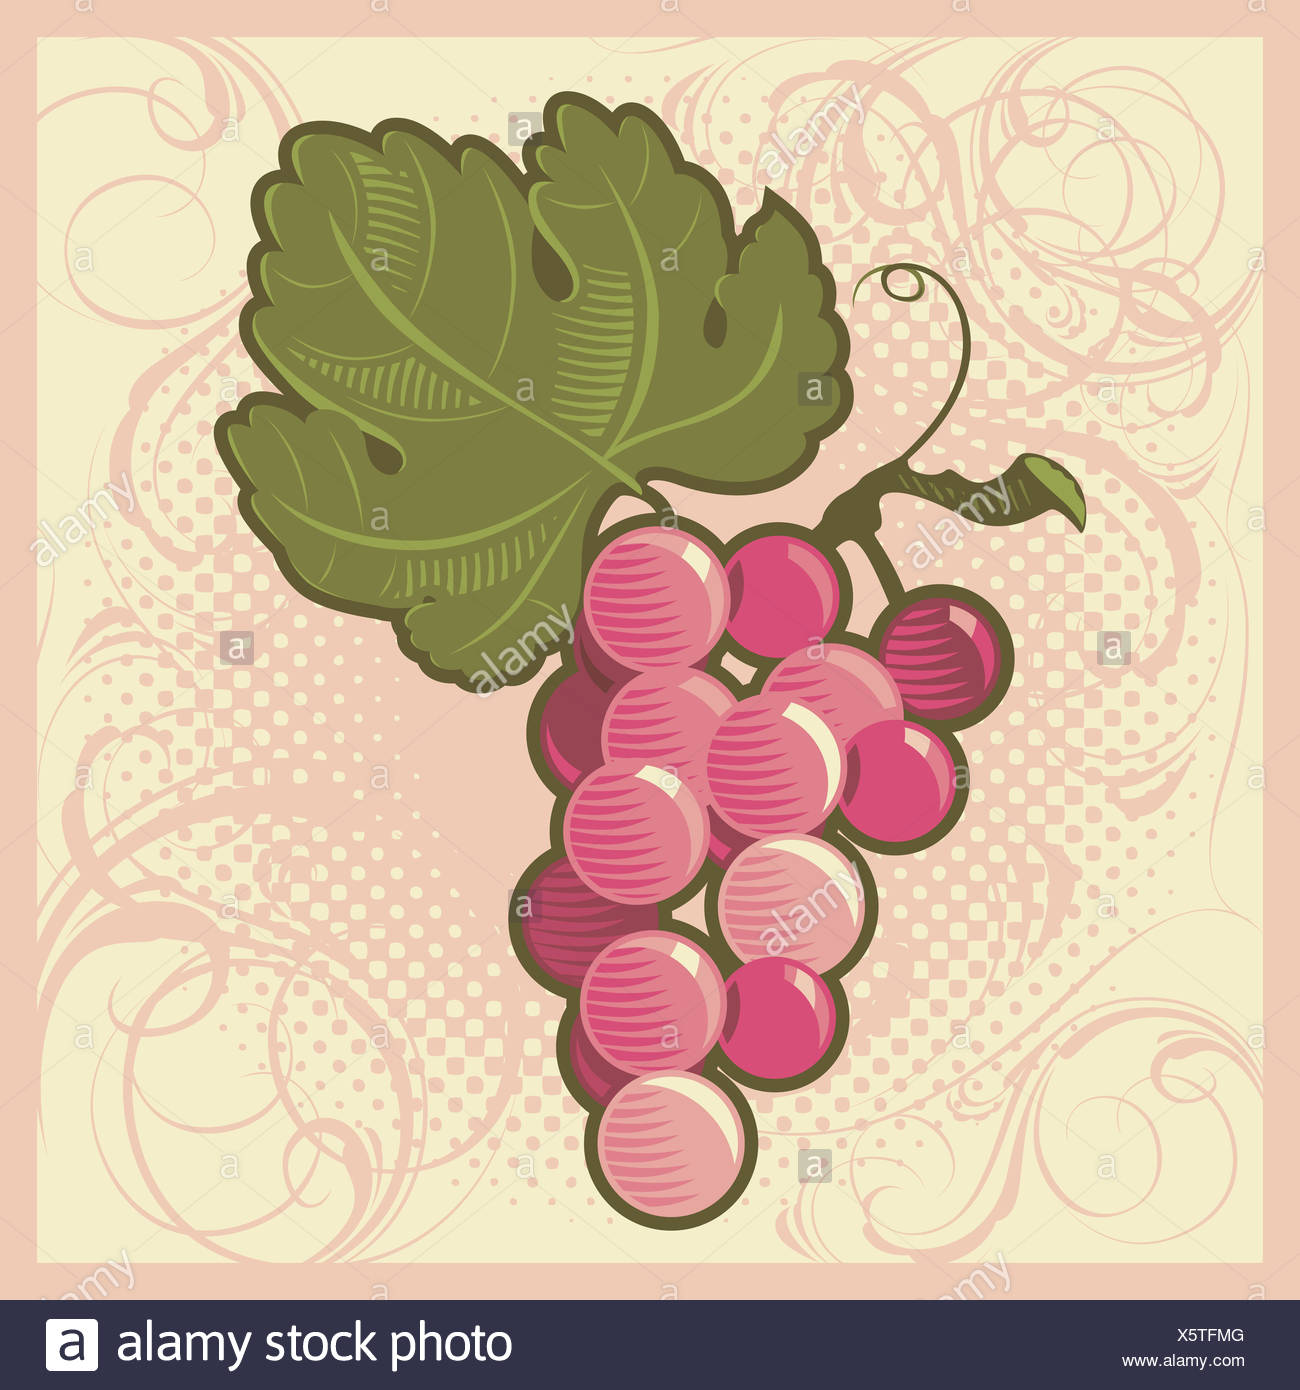 Retro-styled grape bunch - Stock Image